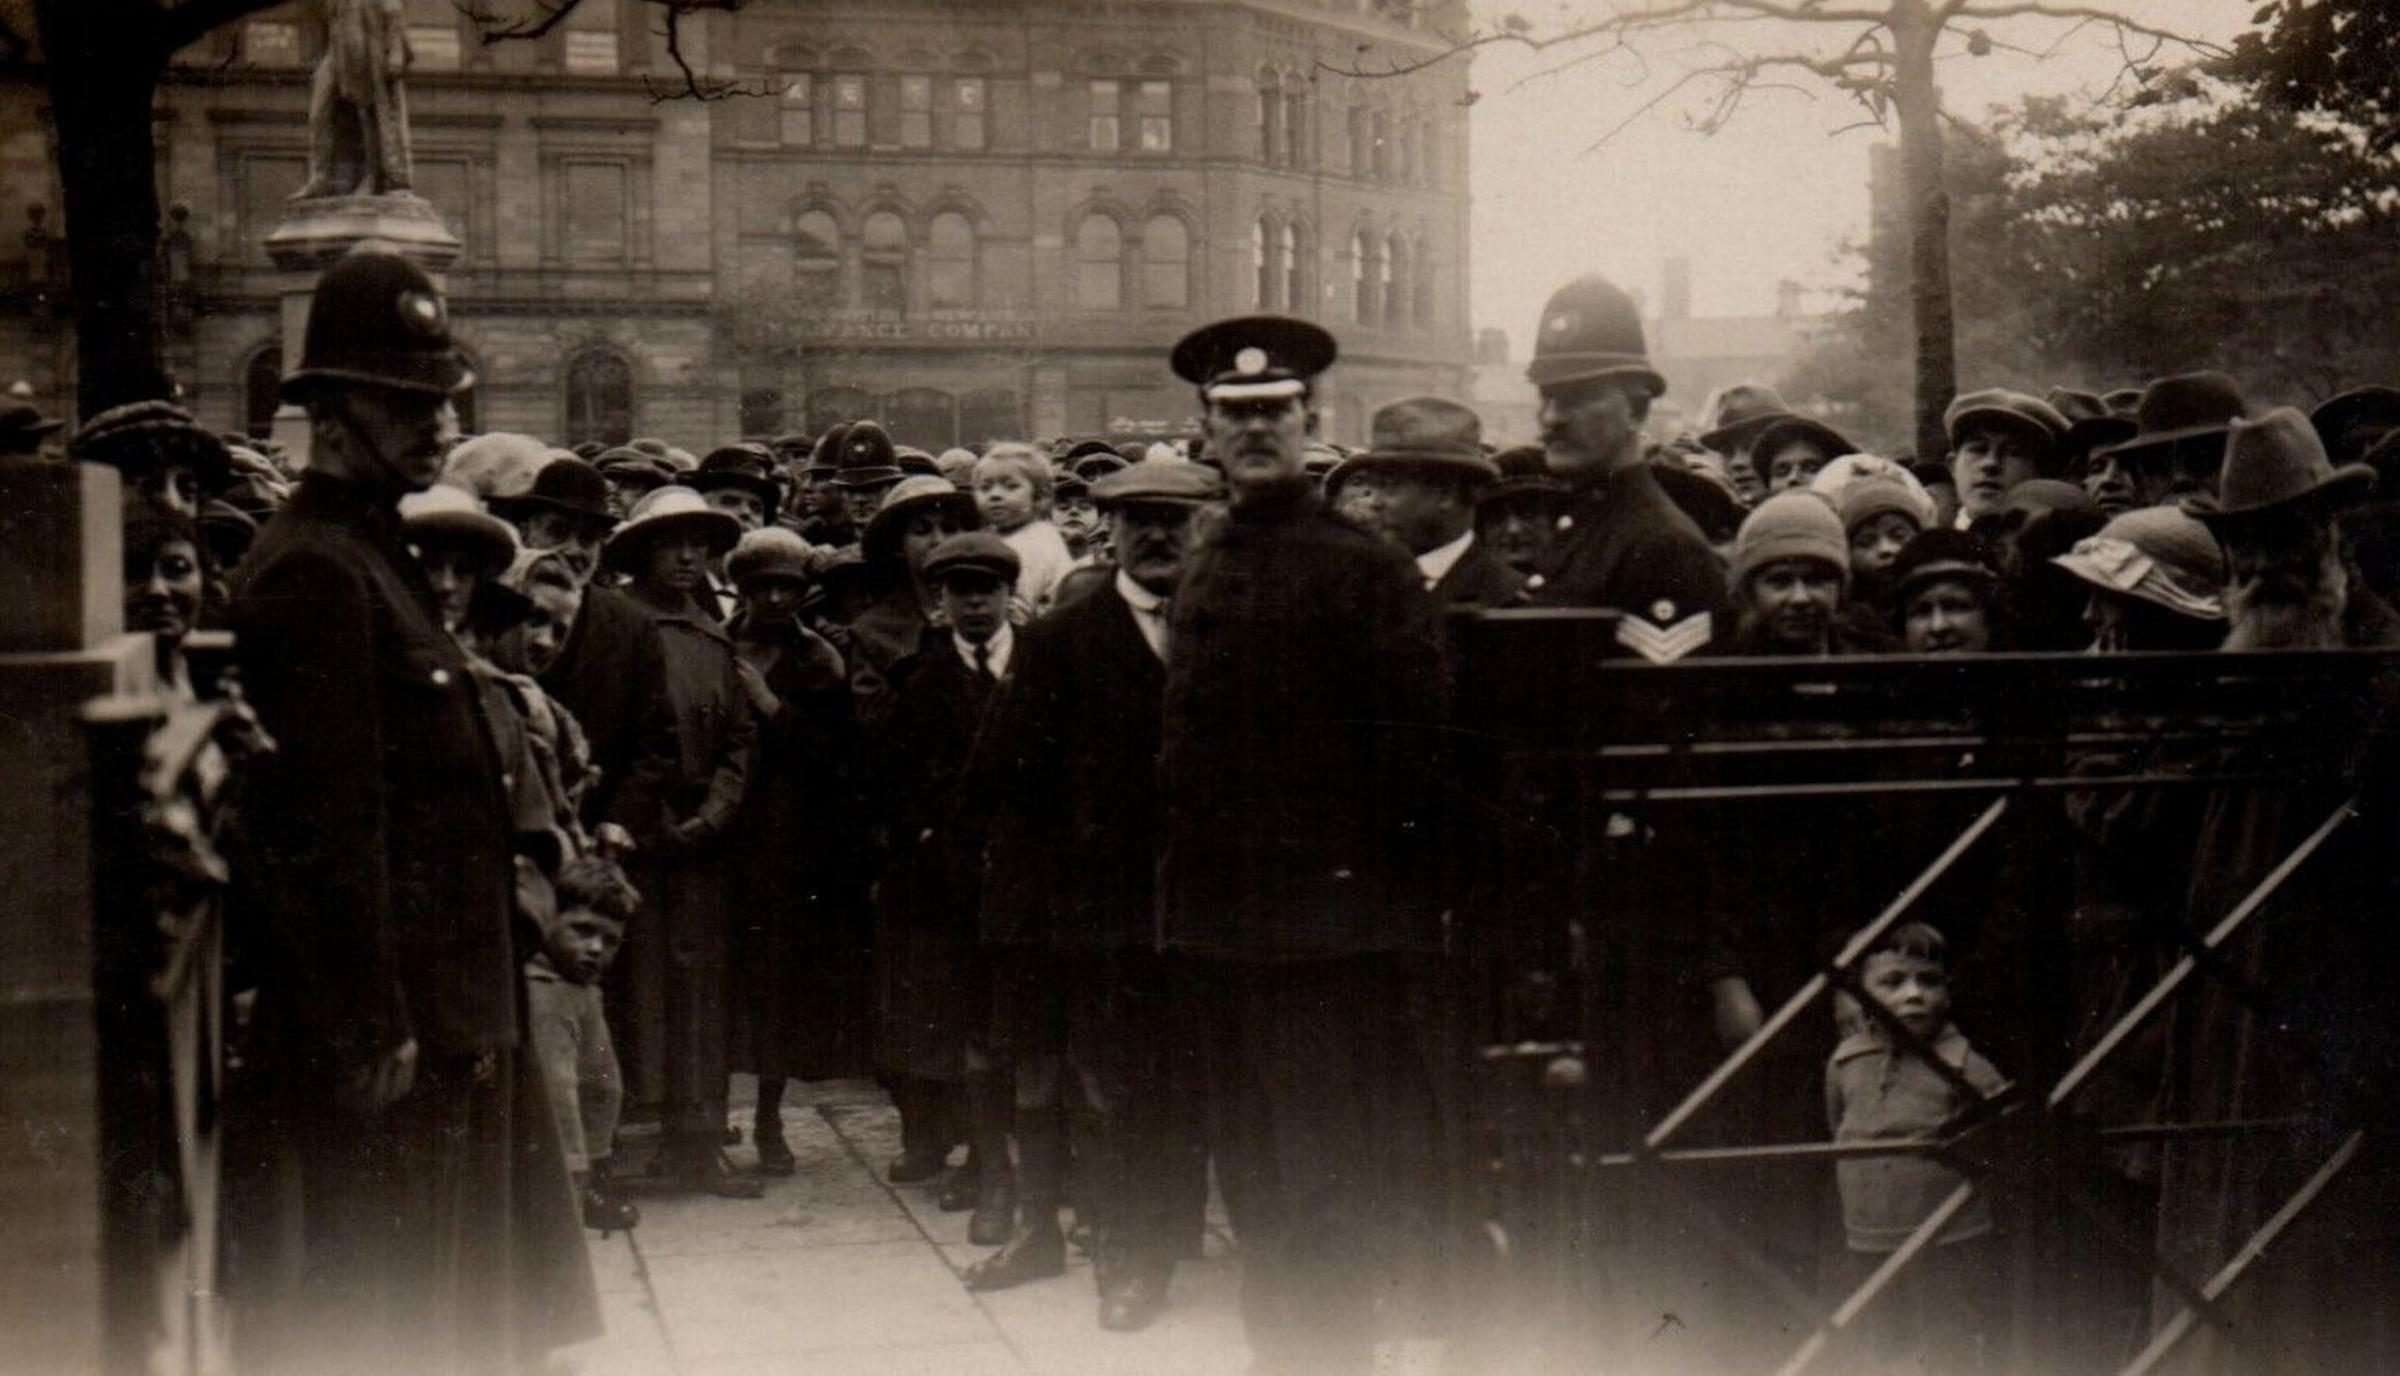 Event: The opening of the new Barrow library on October 5 in 1922 by Edward Sankey